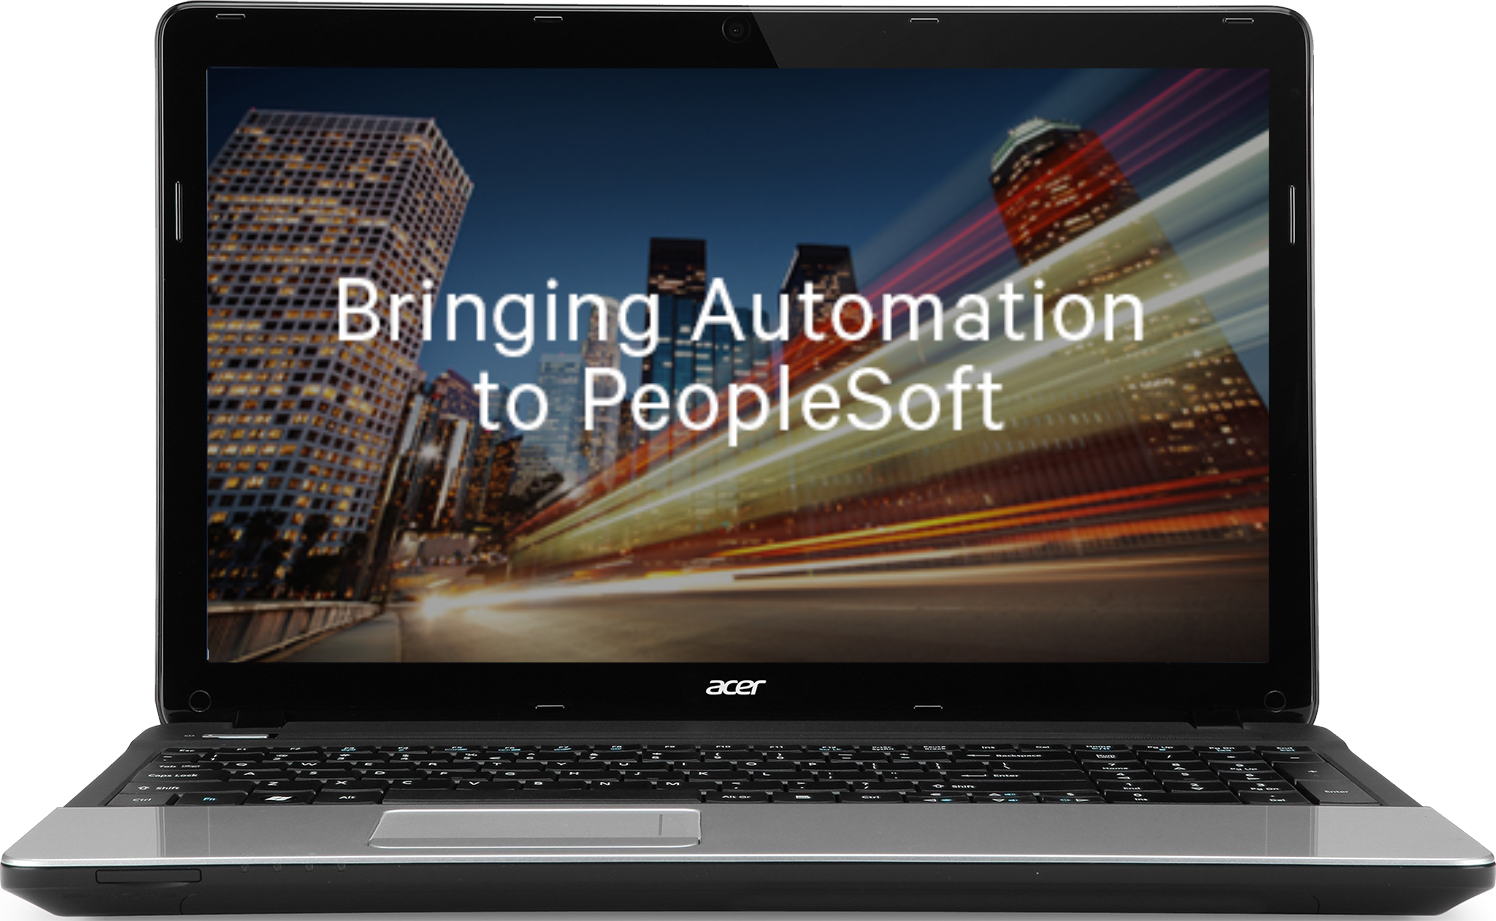 Bringing Automation to Peoplesoft-1.png